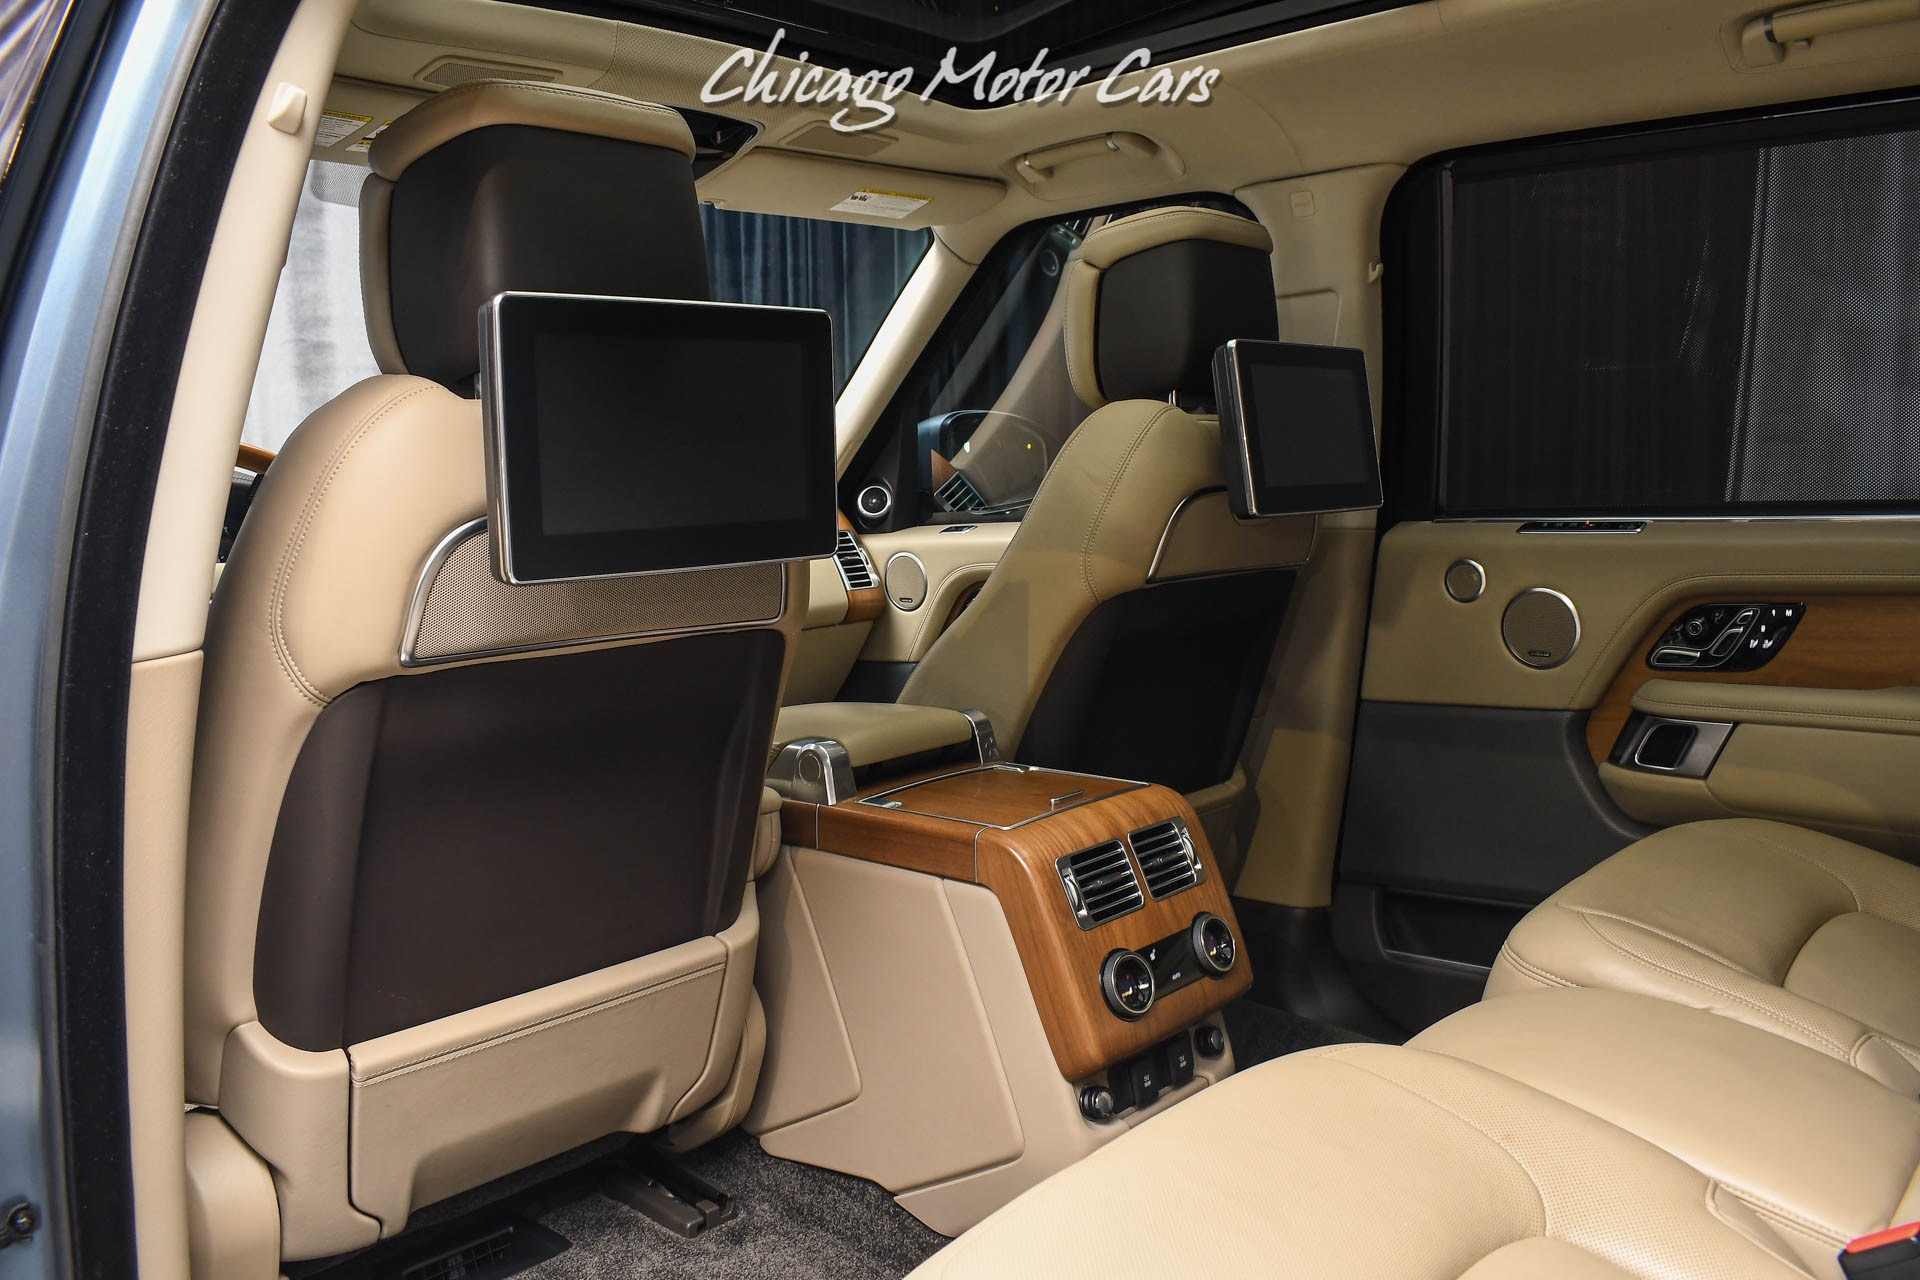 Used-2019-Land-Rover-Range-Rover-Autobiography-LWB-MSRP-159k-Factory-SVO-Satin-Paint-LOADED